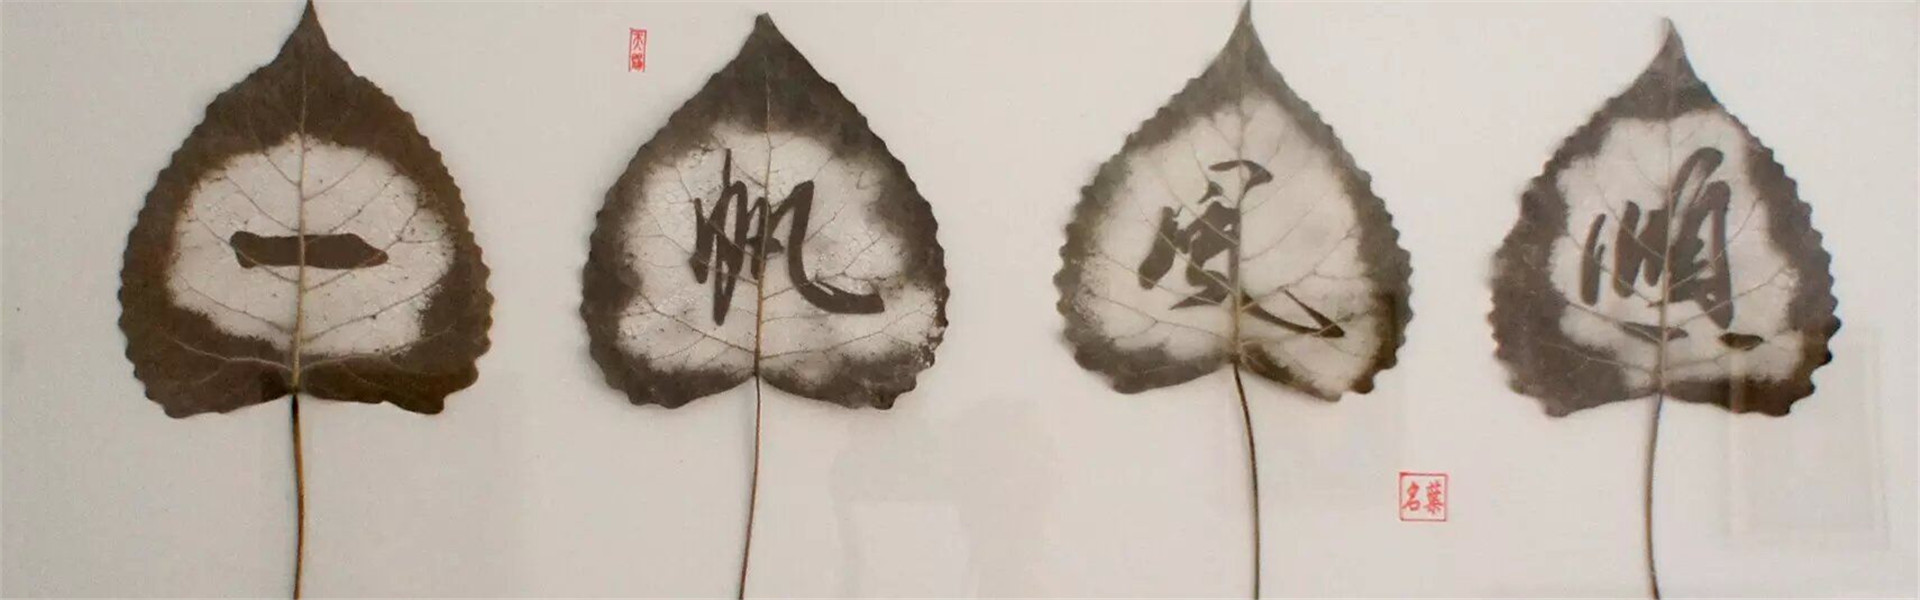 Leafpainting with the Chinese characters